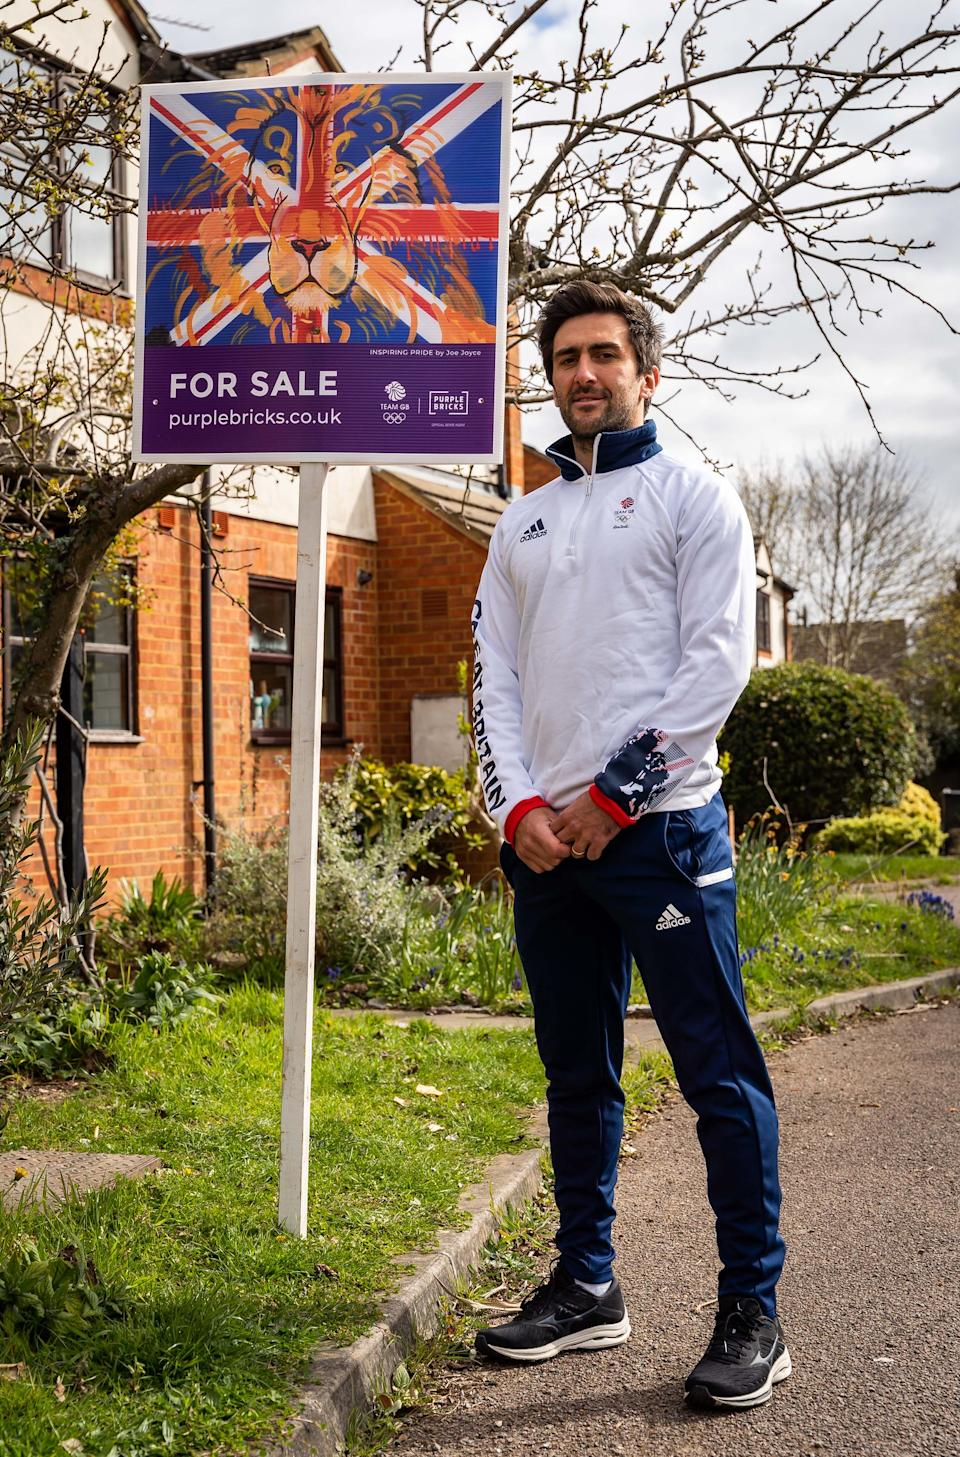 The GB hockey skipper currently has a Purplebricks For Sale board outside his house - with imagery created by GB boxer Joe Joyce